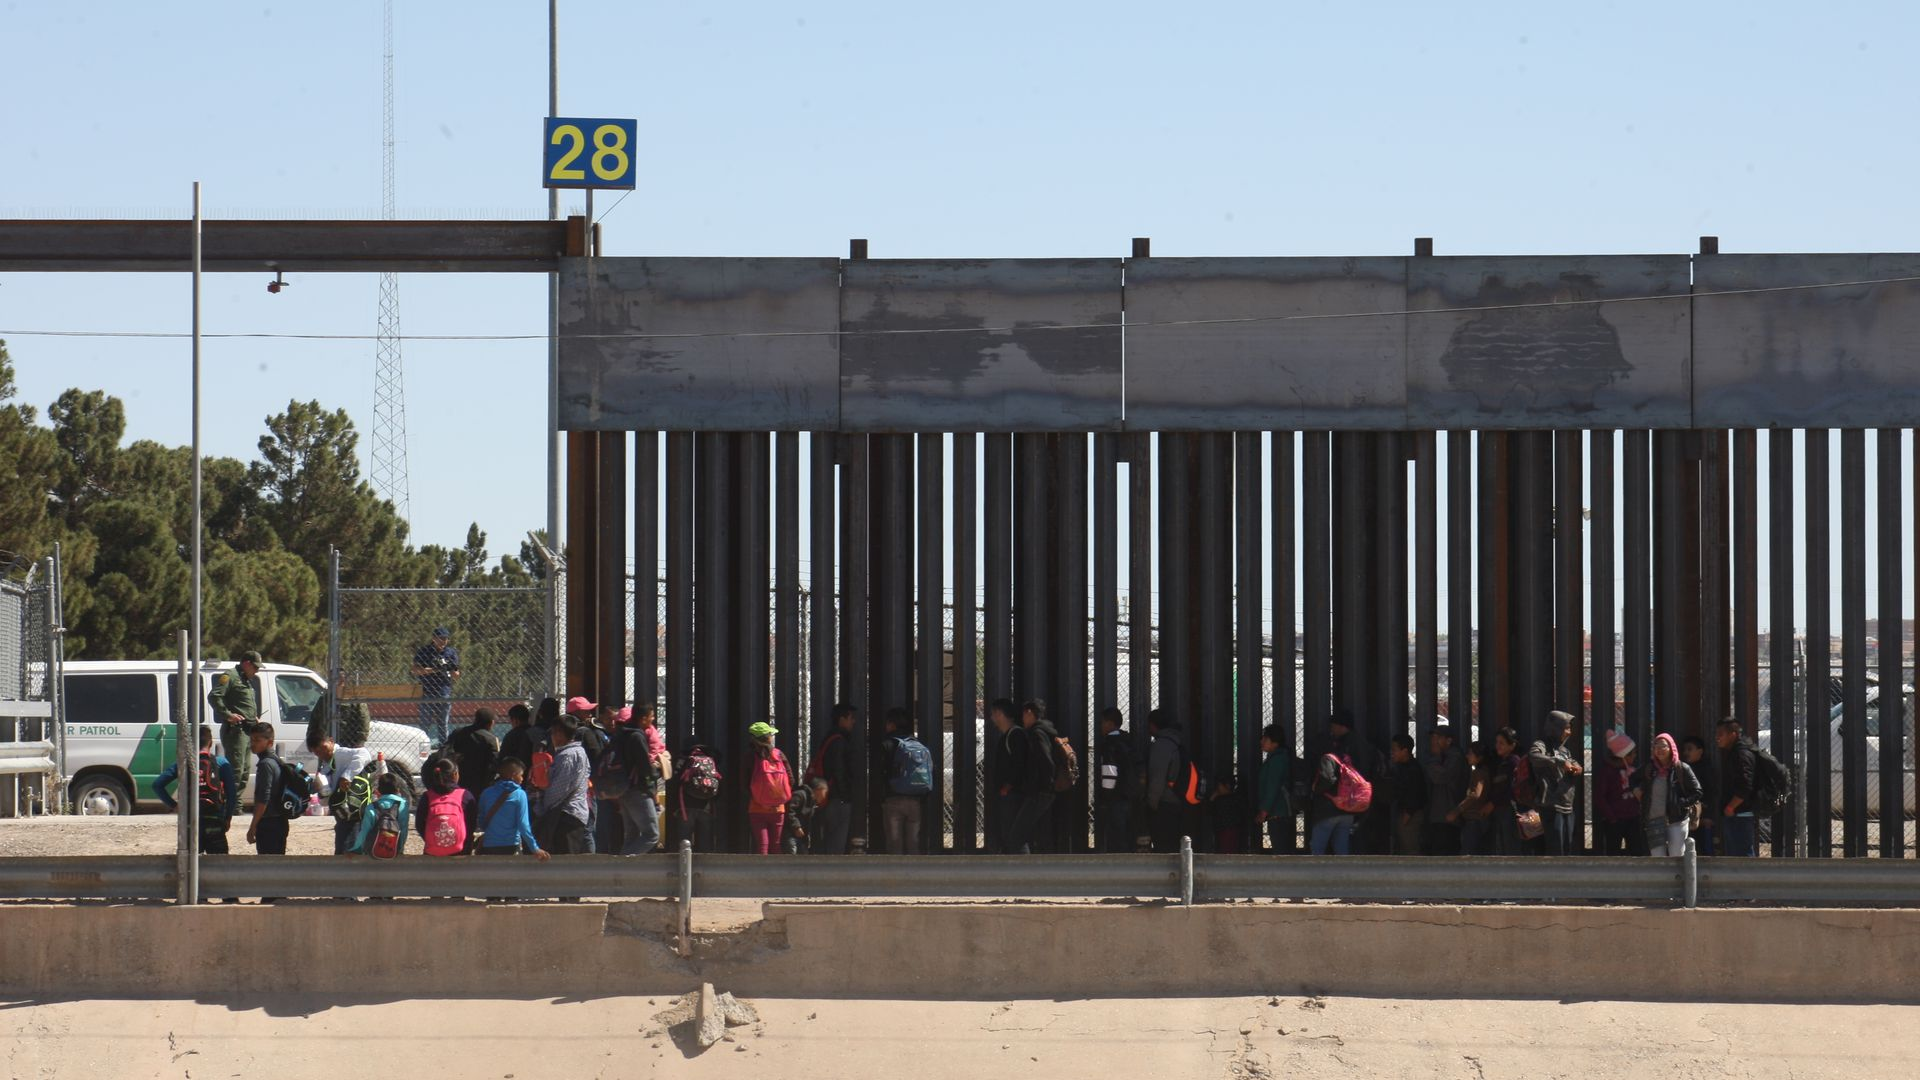 Many groups of Central American migrants were seen, crossing the border, the border patrol said that on average 1,000 migrants cross the border in the city Juarez the Paso Texas on April 22.